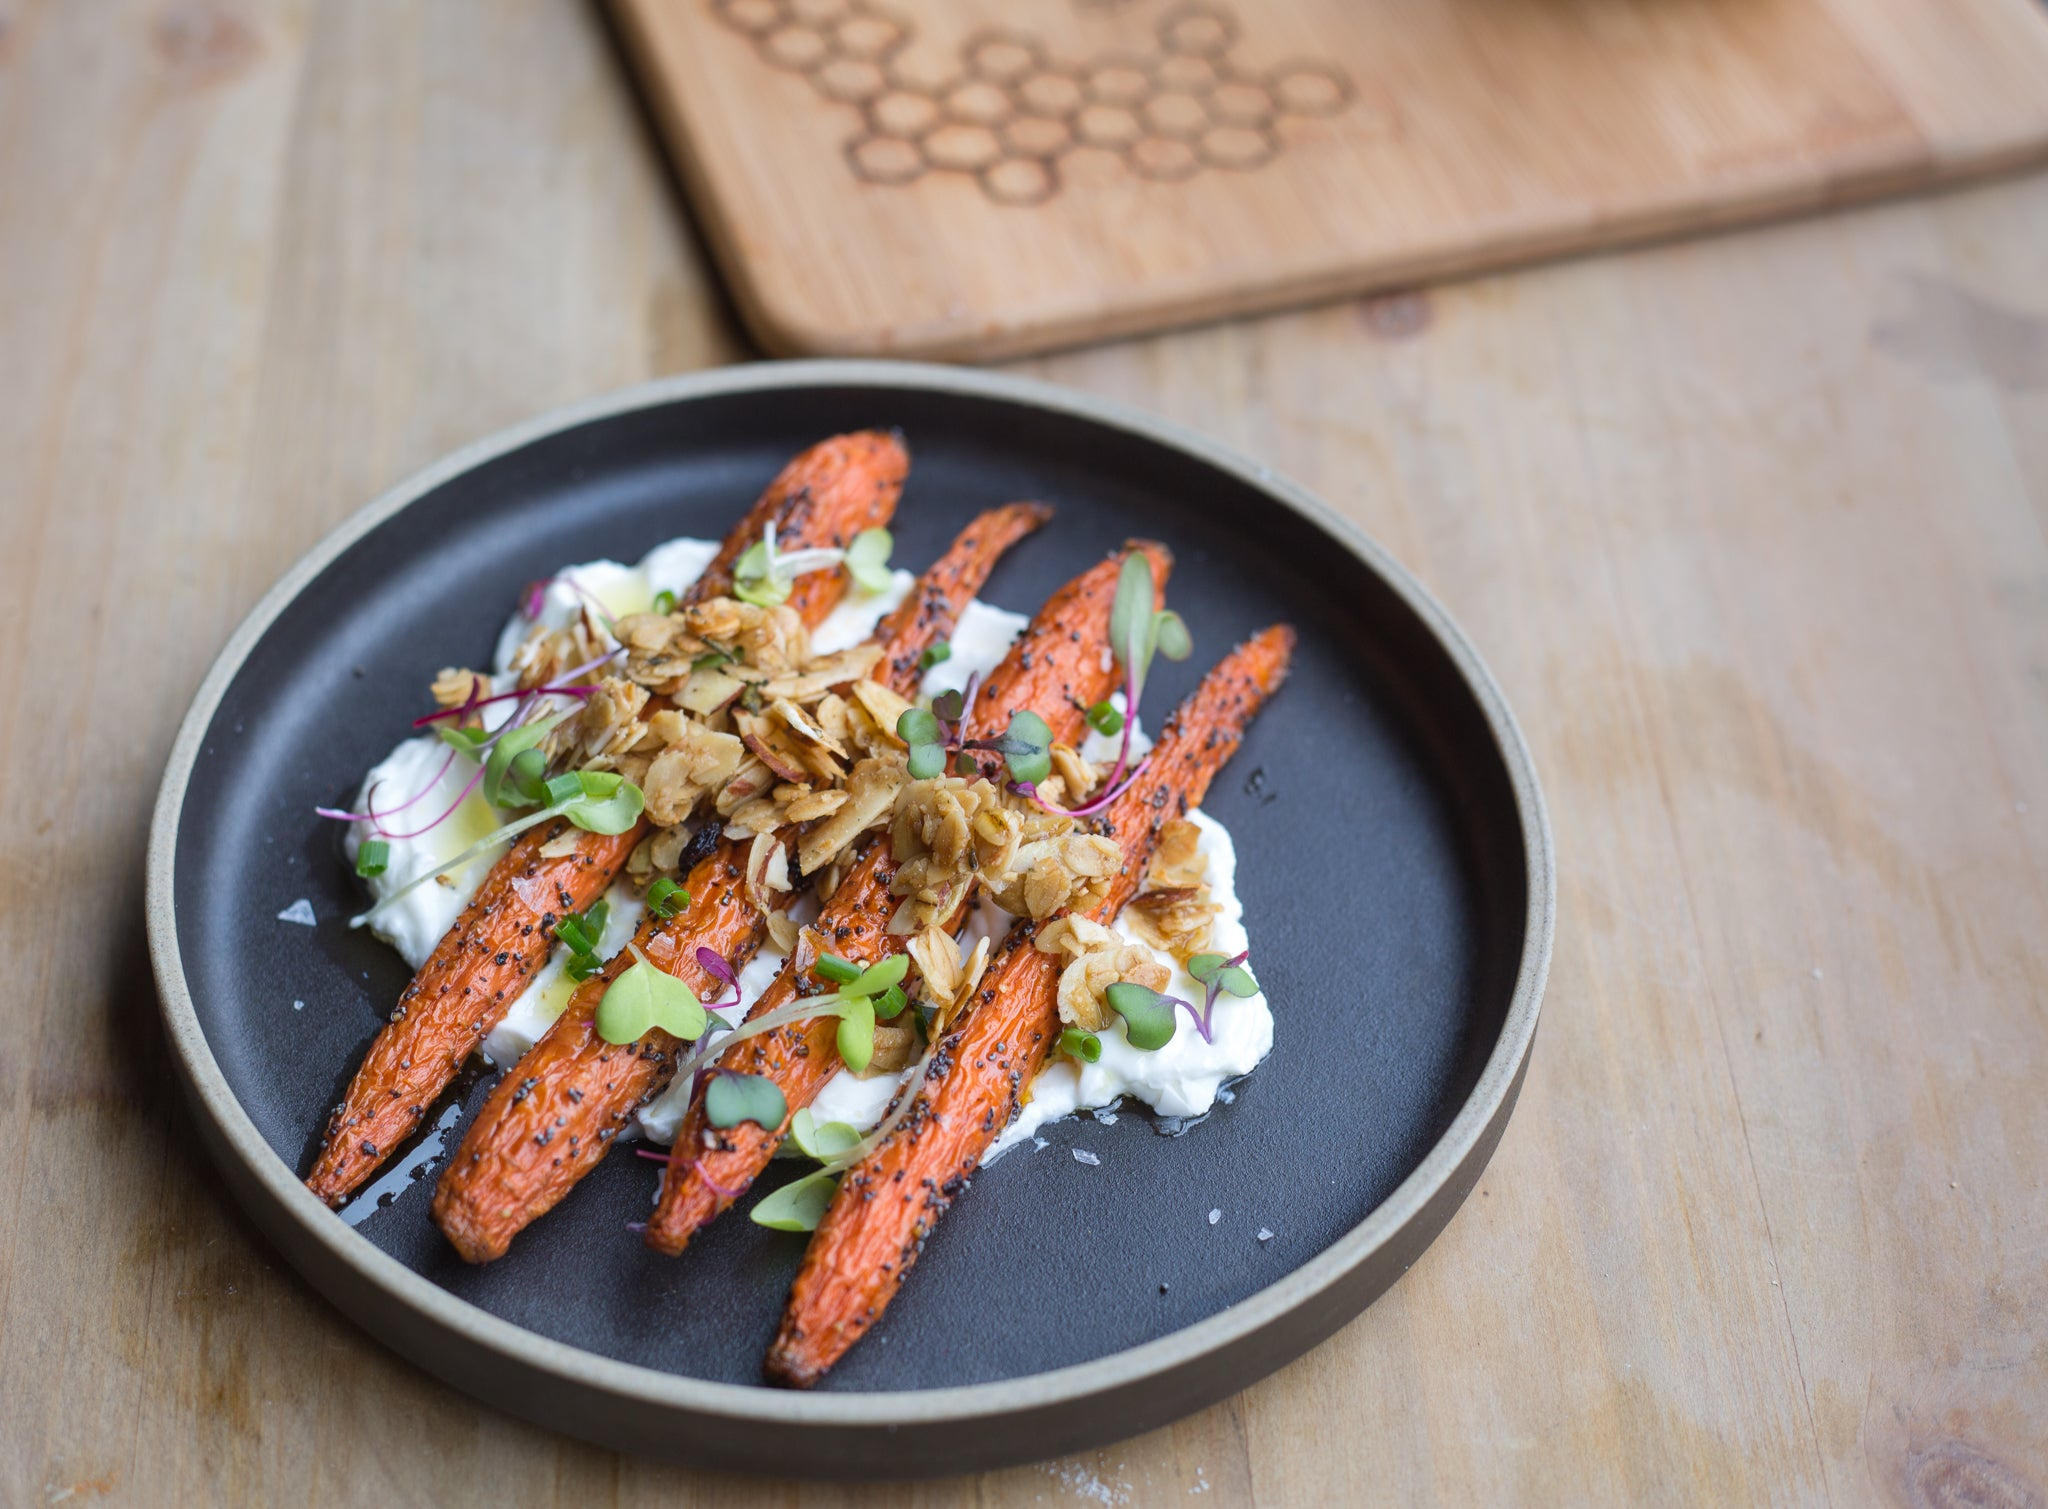 Honey Roasted Carrots with Rosemary Granola from bumble & butter